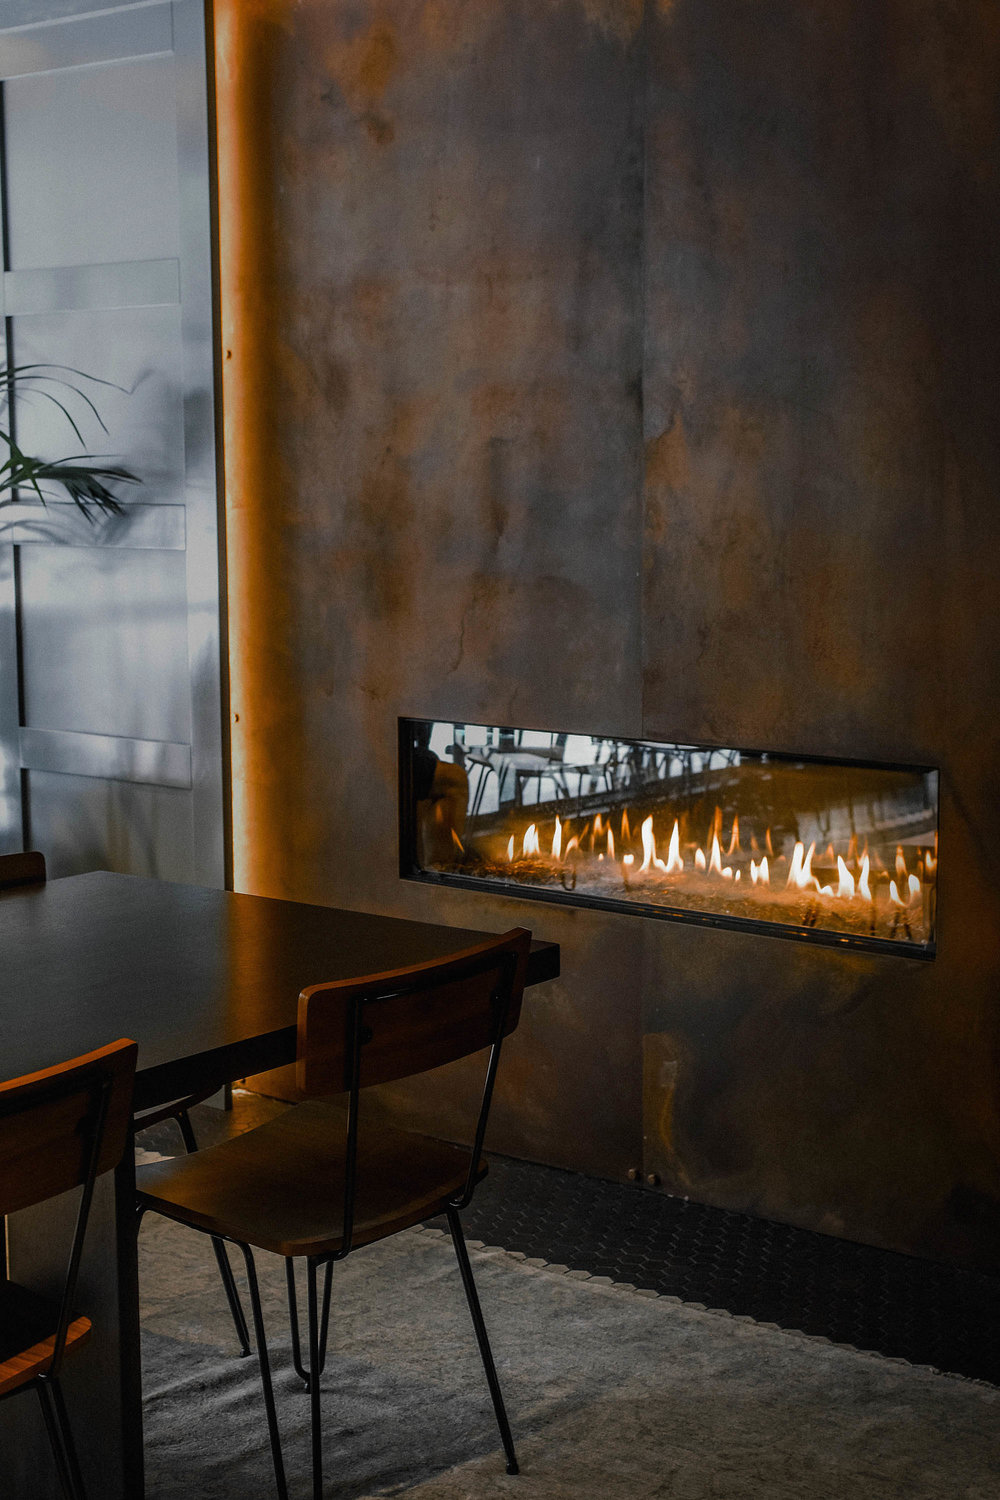 Super warm and inviting. Definitely using this as interior inspo when we build a house.